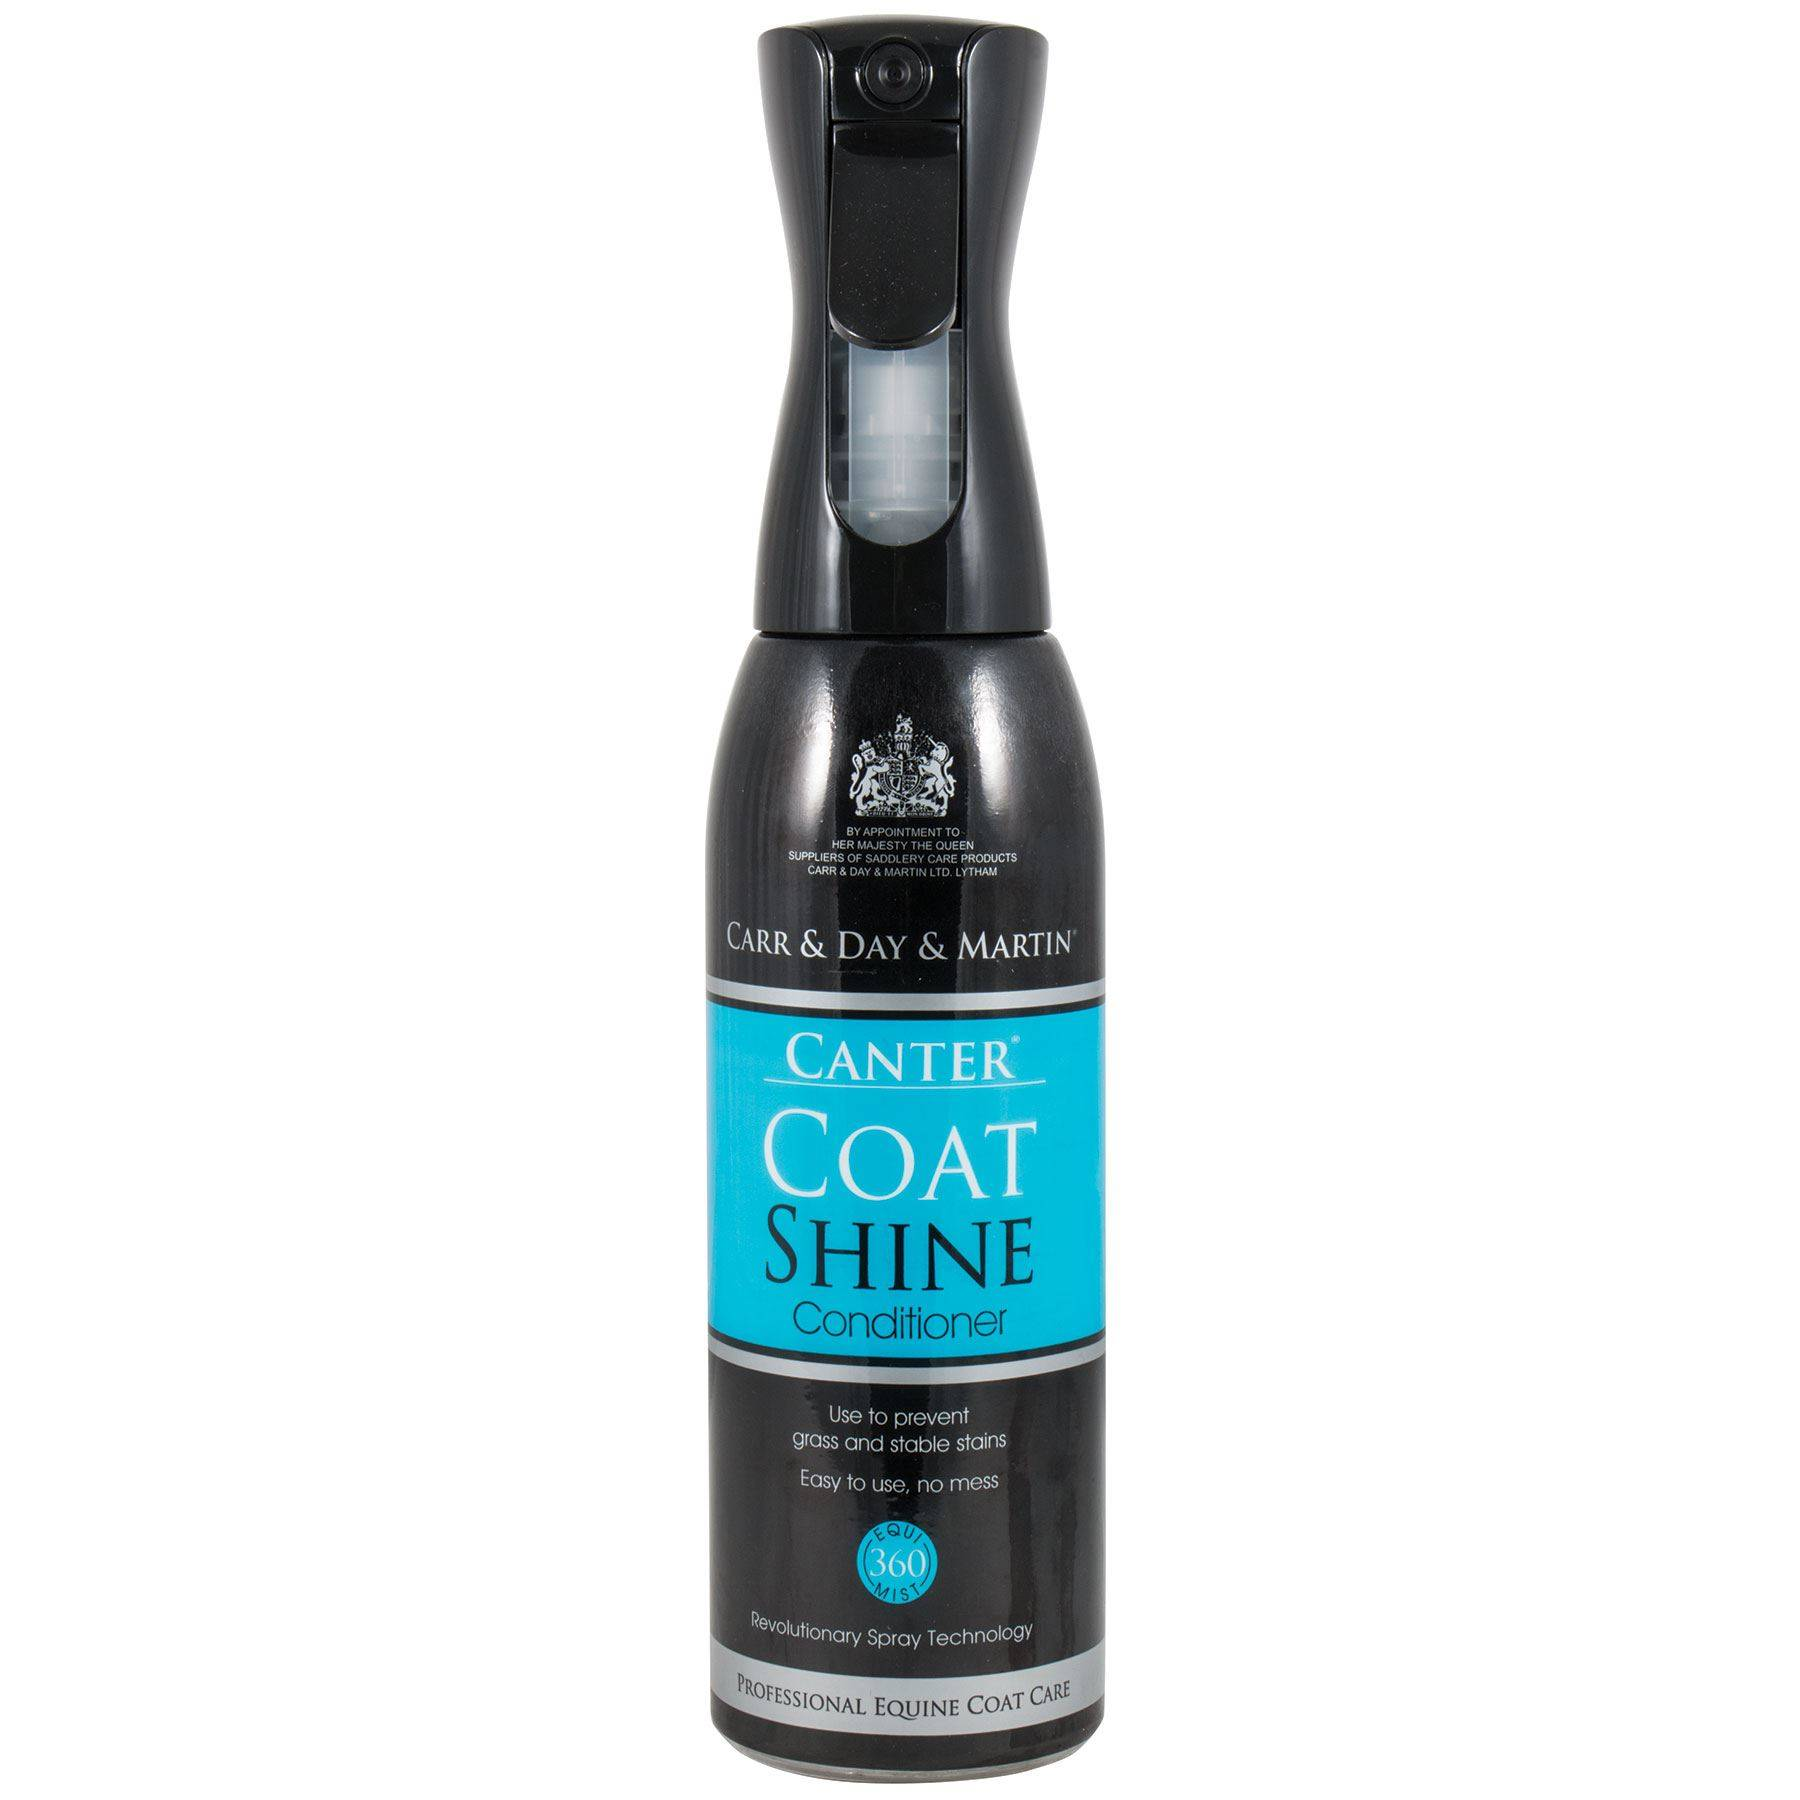 Carr & Day & Martin® Canter® Coat Shine Conditioner